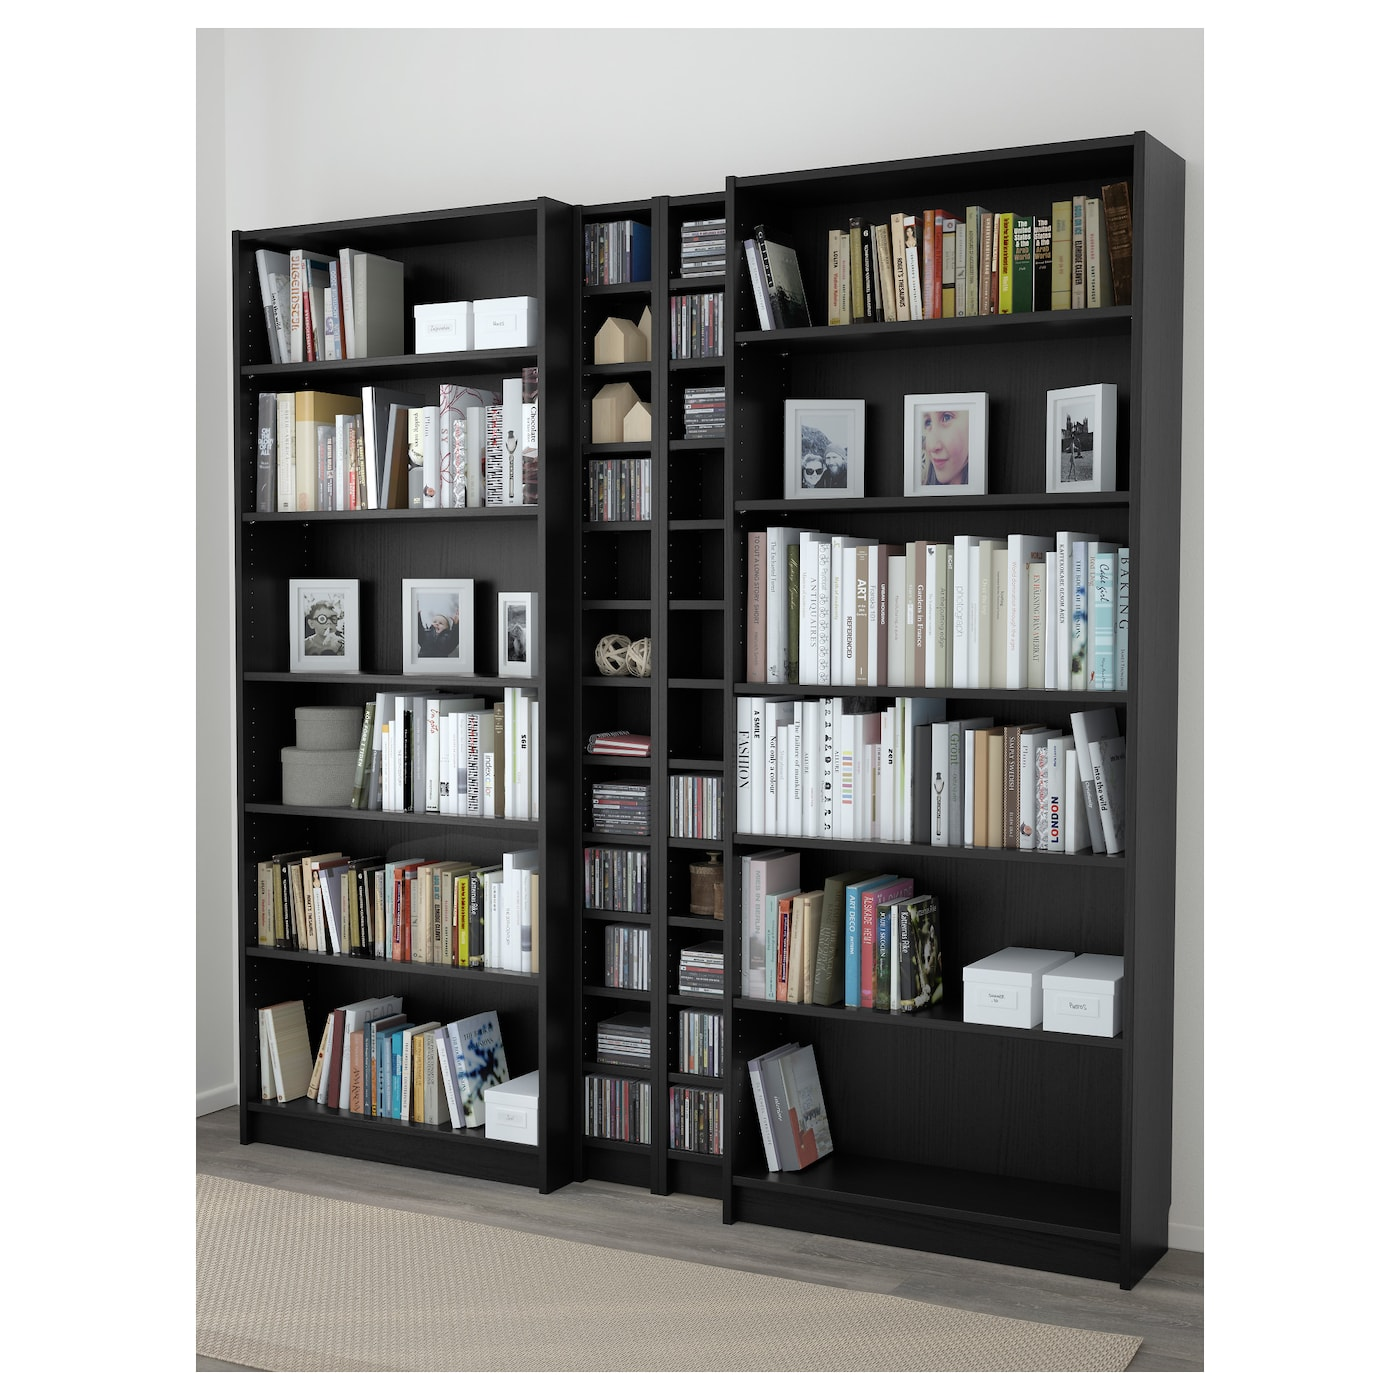 Ikea Billy Gnedby Bookcase Adjule Shelves Adapt E Between According To Your Needs